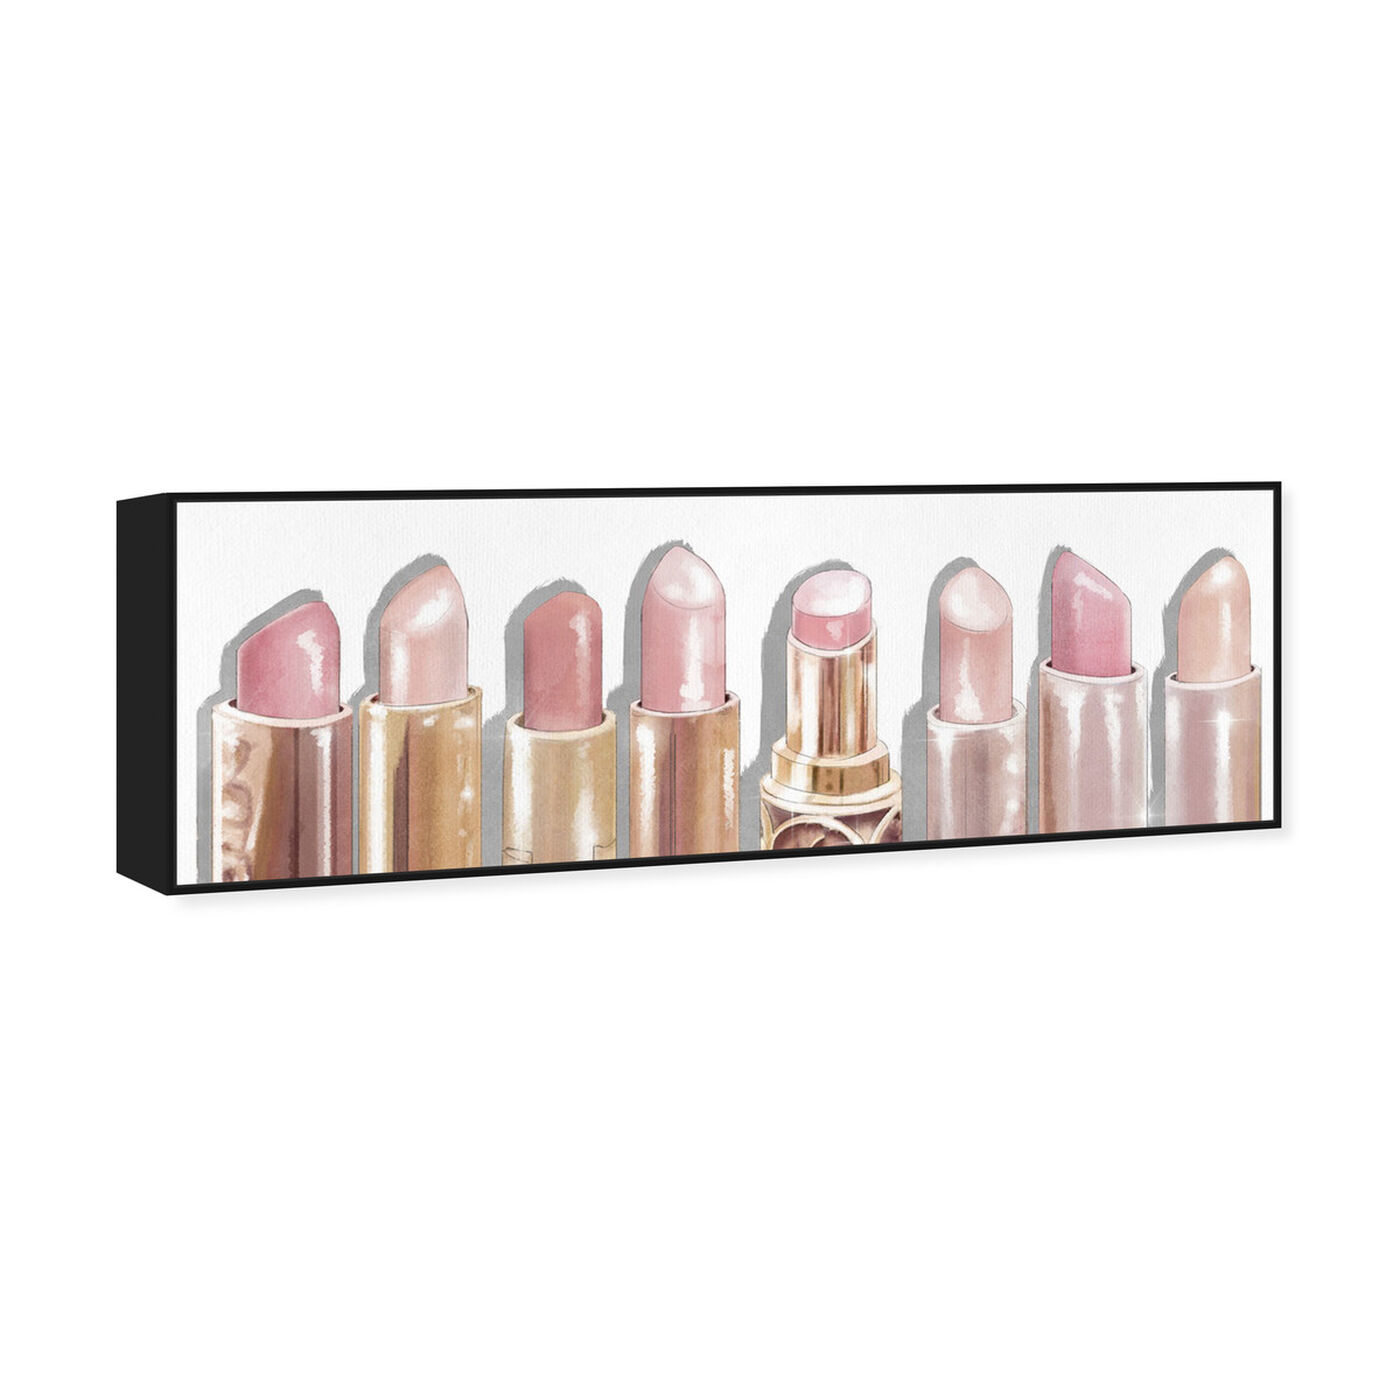 Angled view of Lipstick Shades featuring fashion and glam and makeup art.